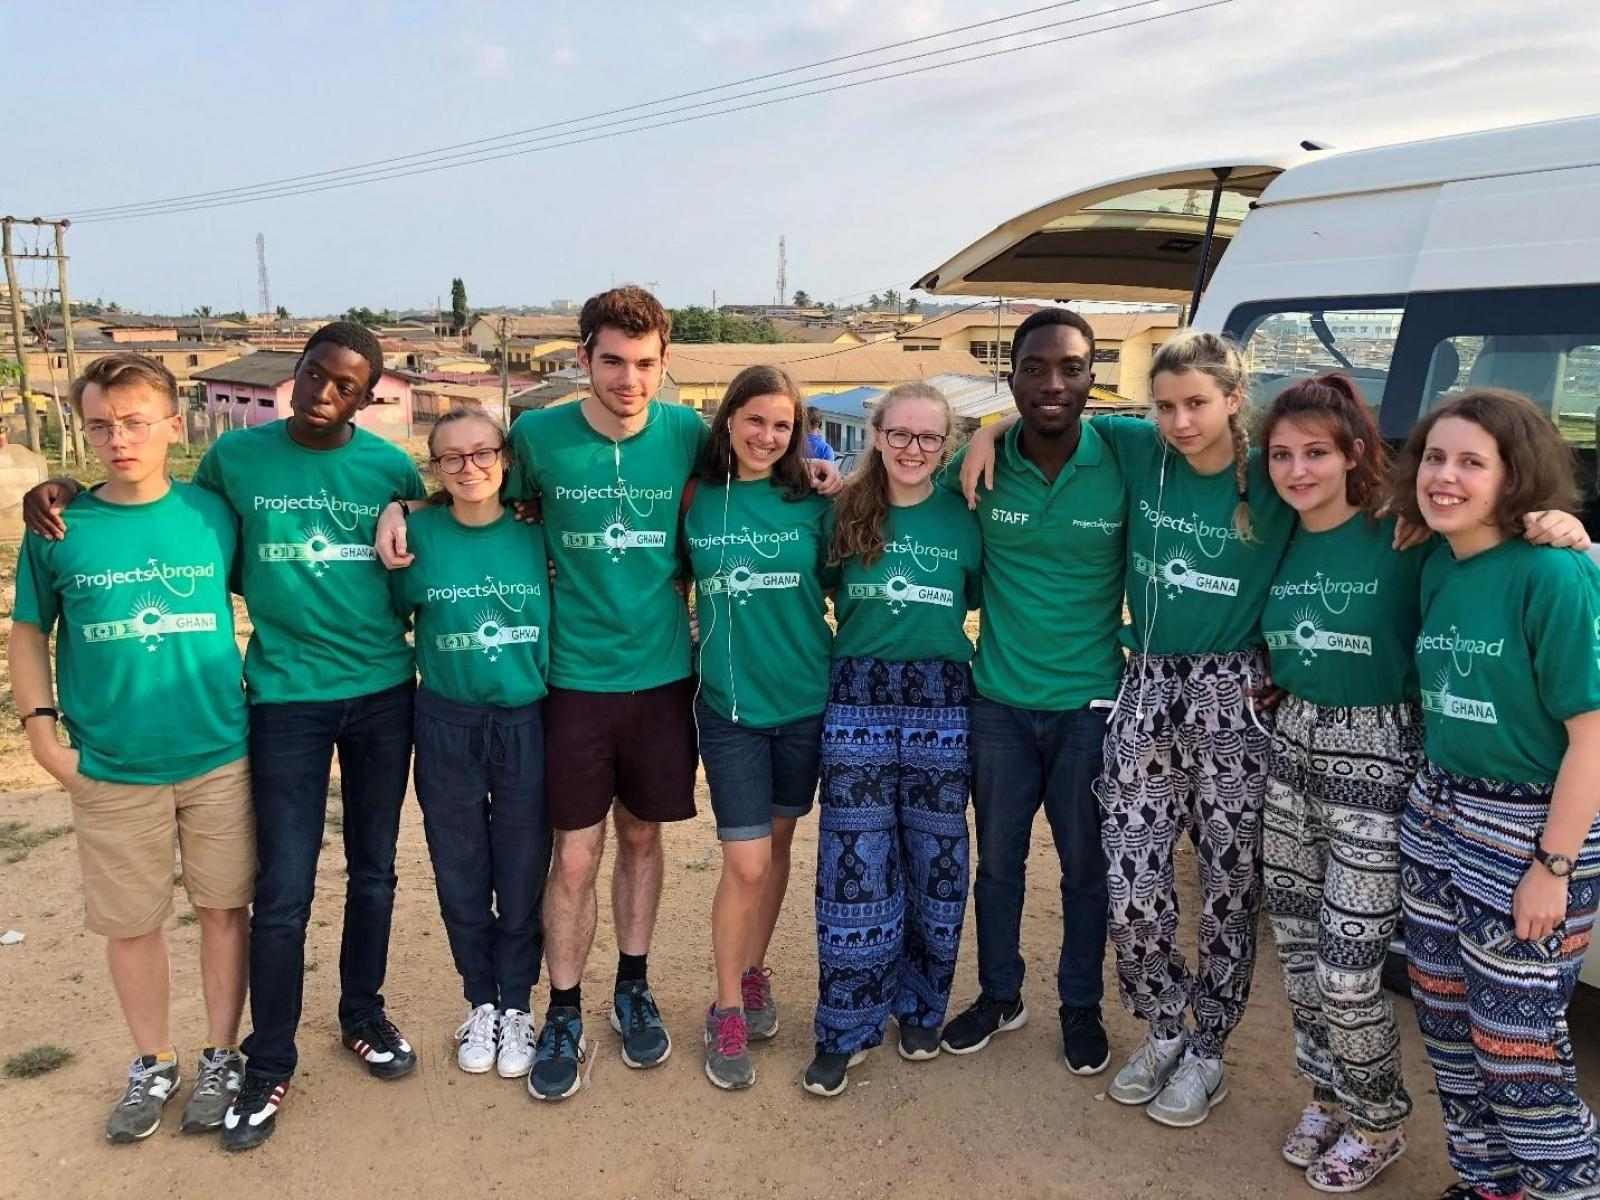 A group of high school students volunteering with Projects Abroad in Ghana